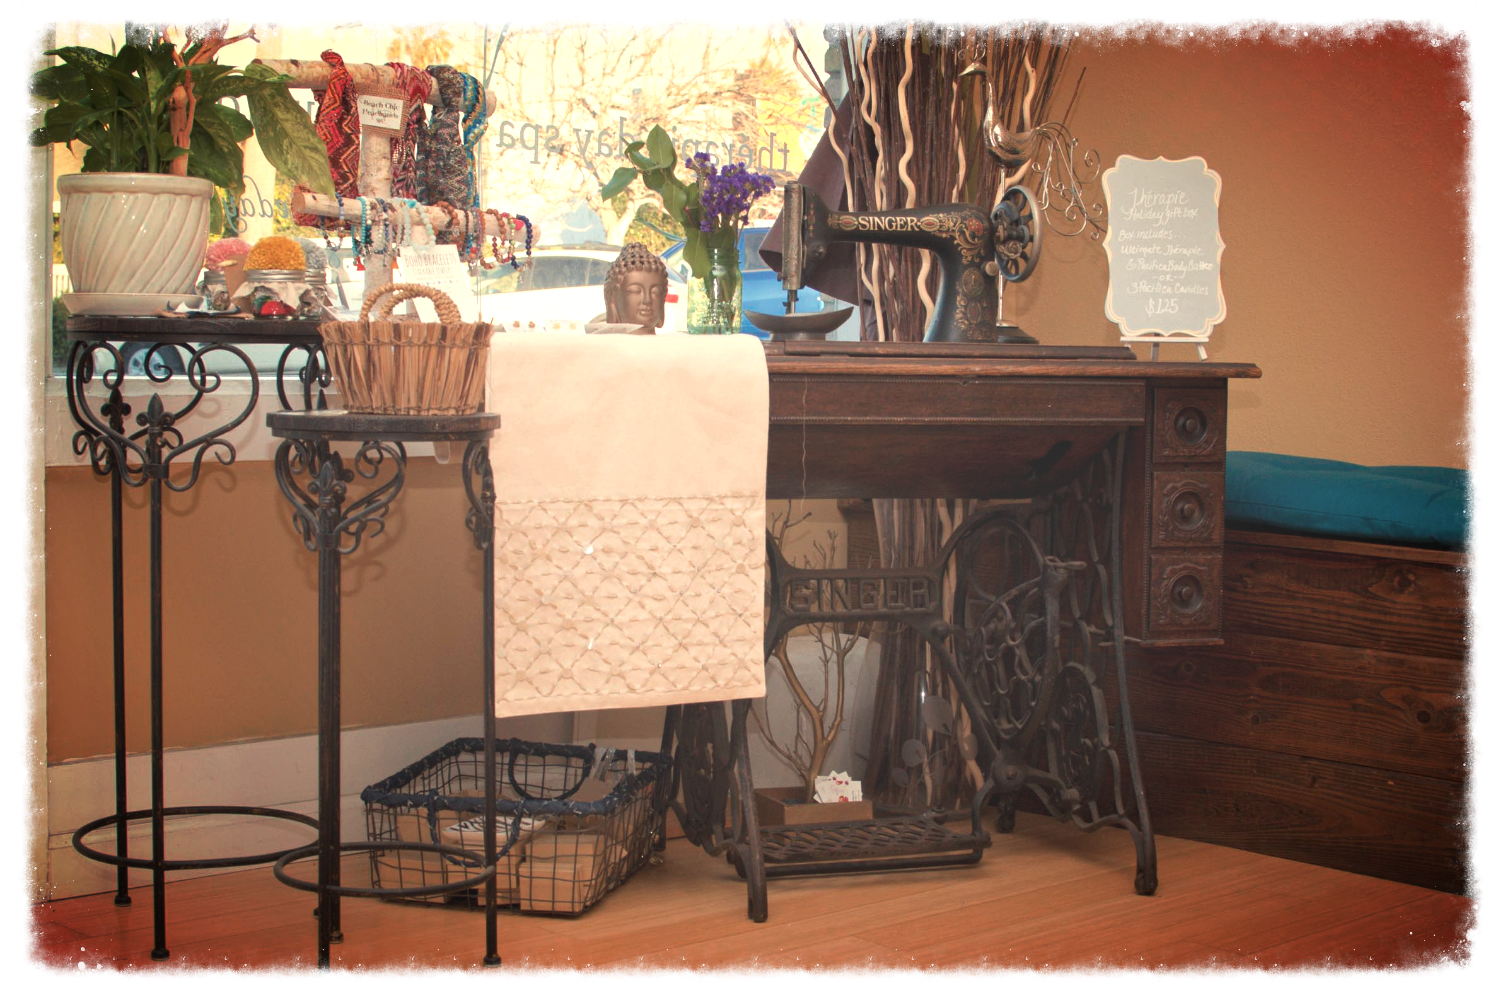 Our boutique feat. artisan gifts